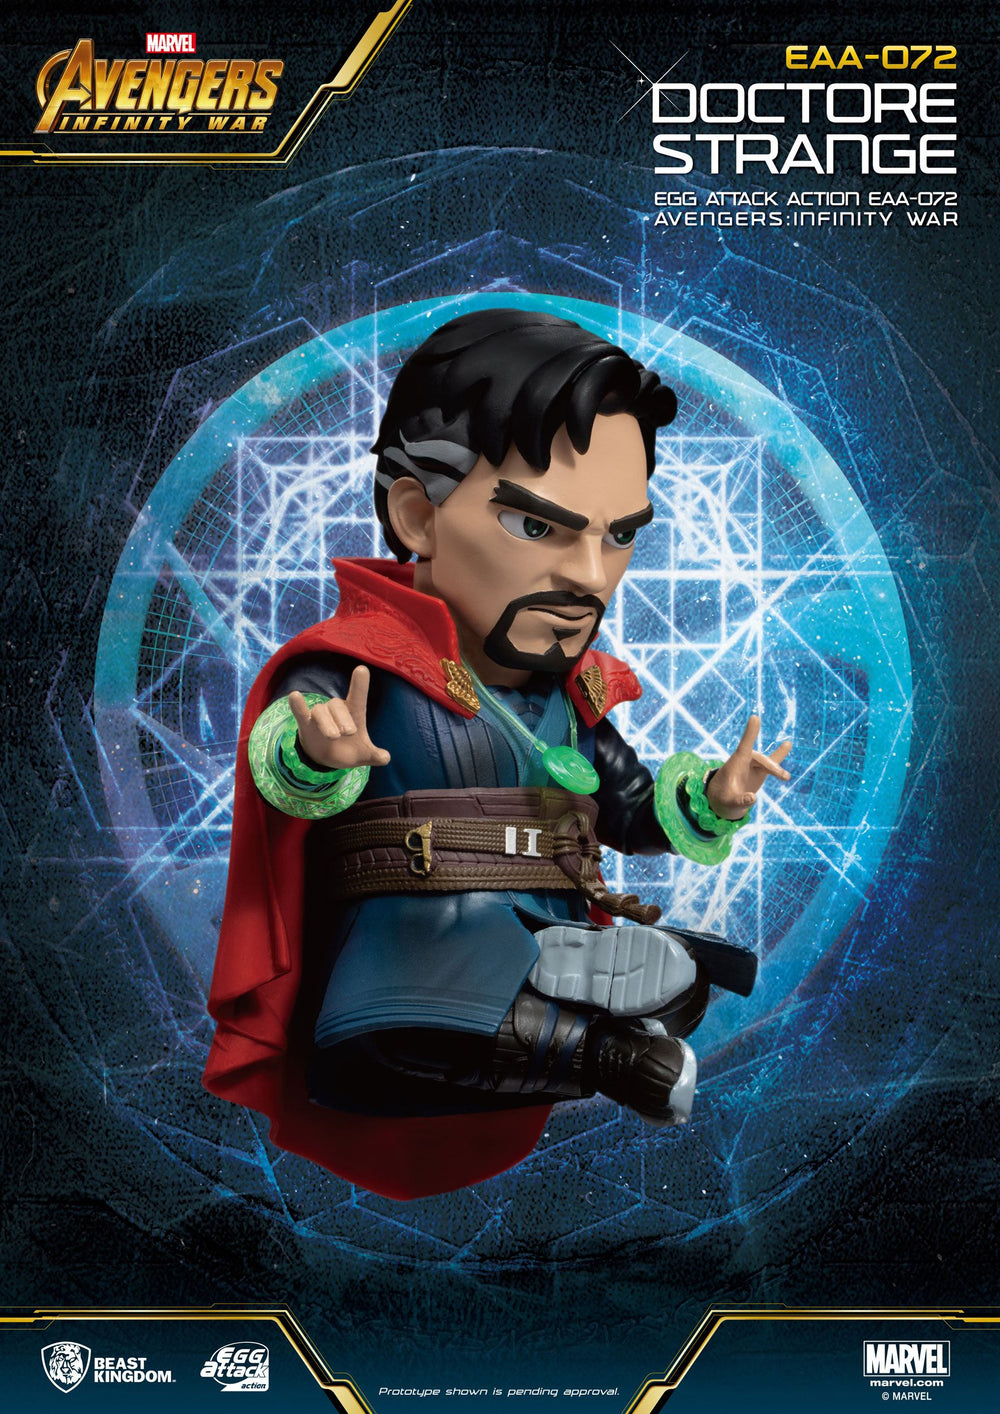 Beast Kingdom Avengers: Infinity War Doctor Strange Egg Attack Action Figure